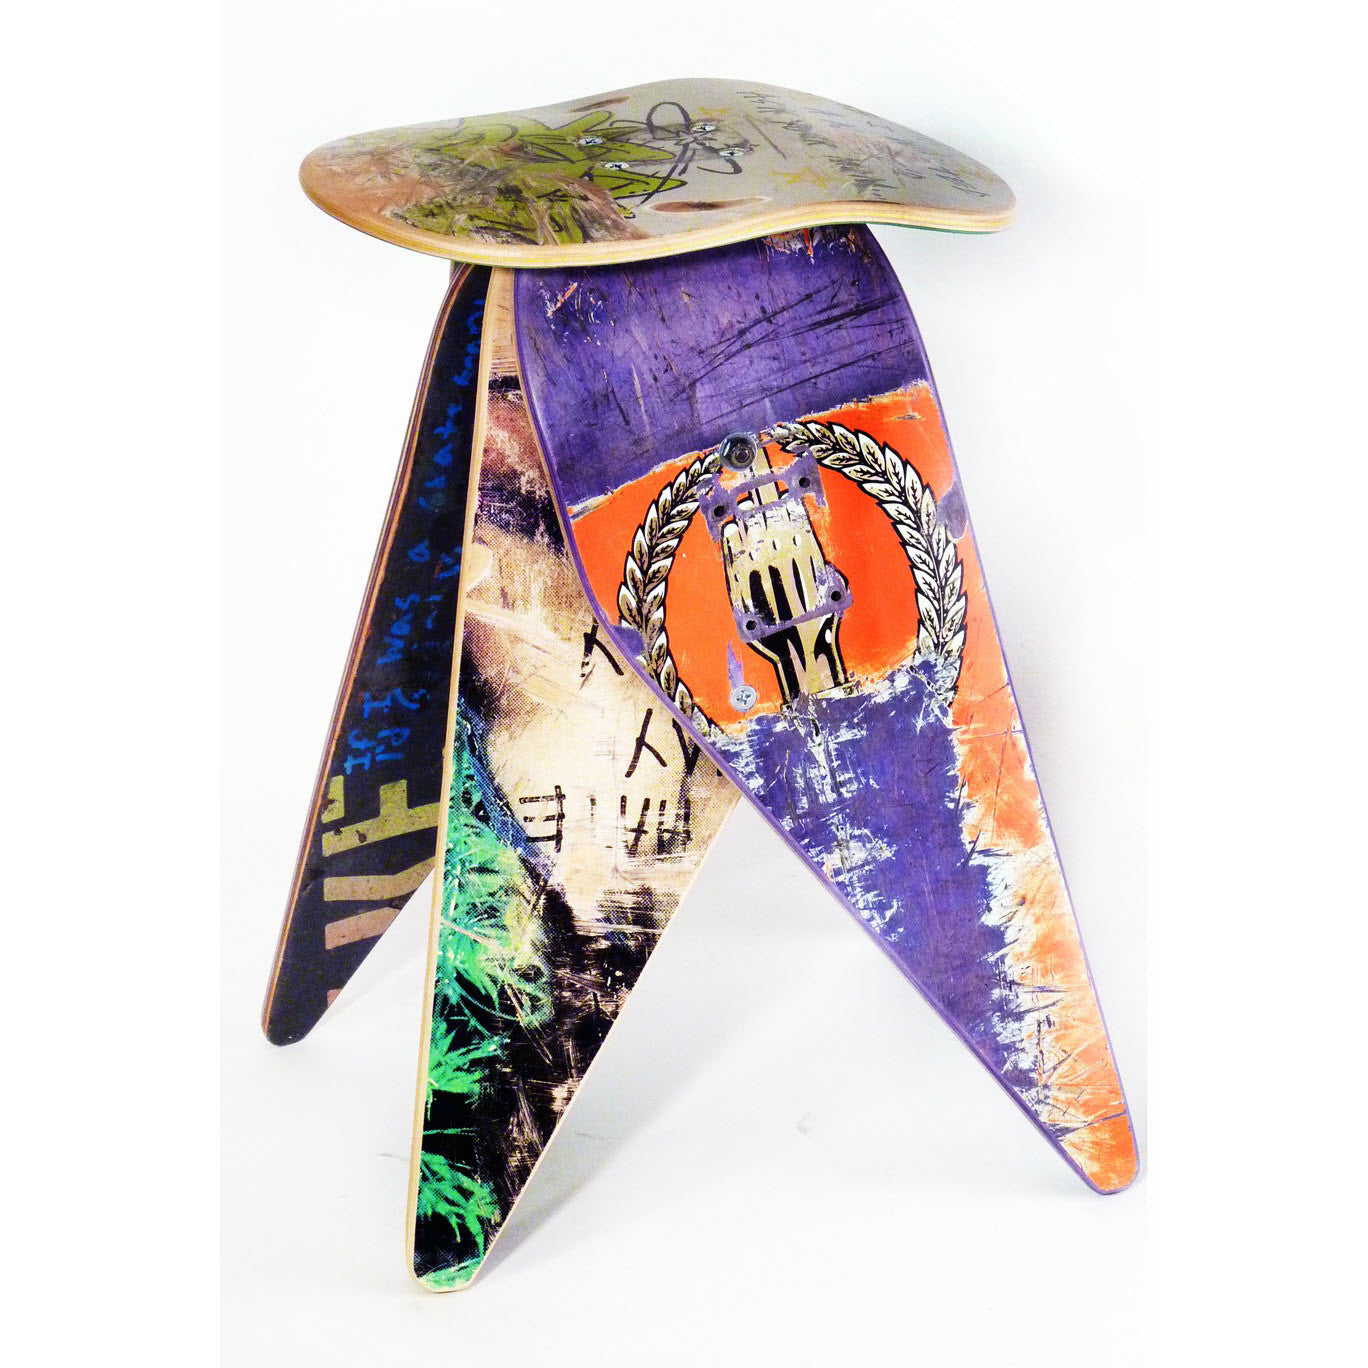 3a8d8181979 Recycled Skateboard Stool - The Spotted Door